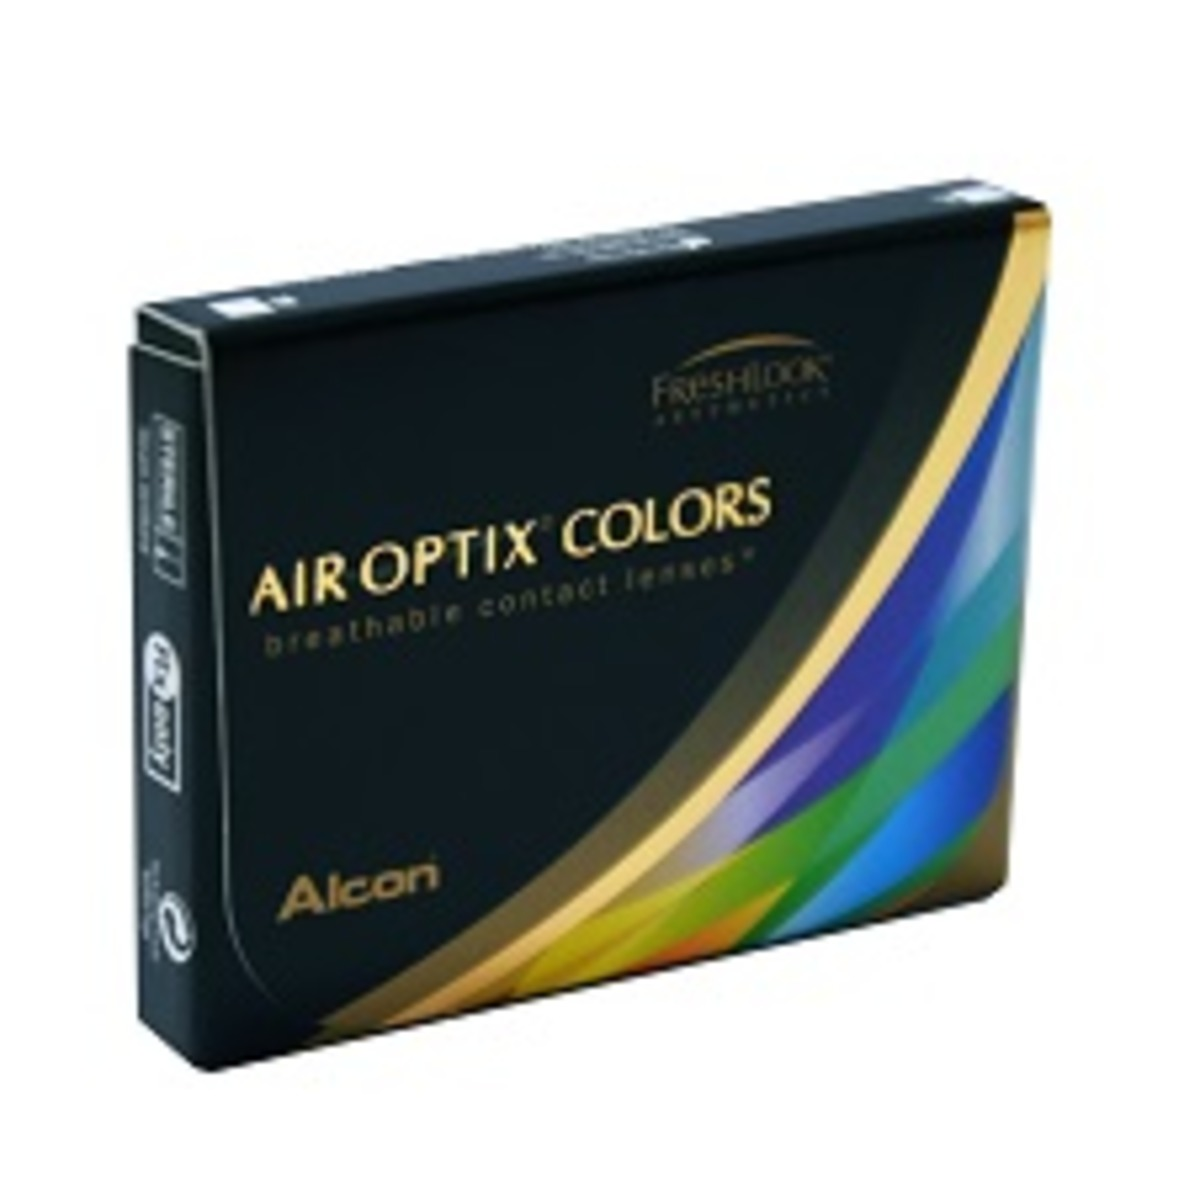 Air Optix Colors Gris Perle (Gray)